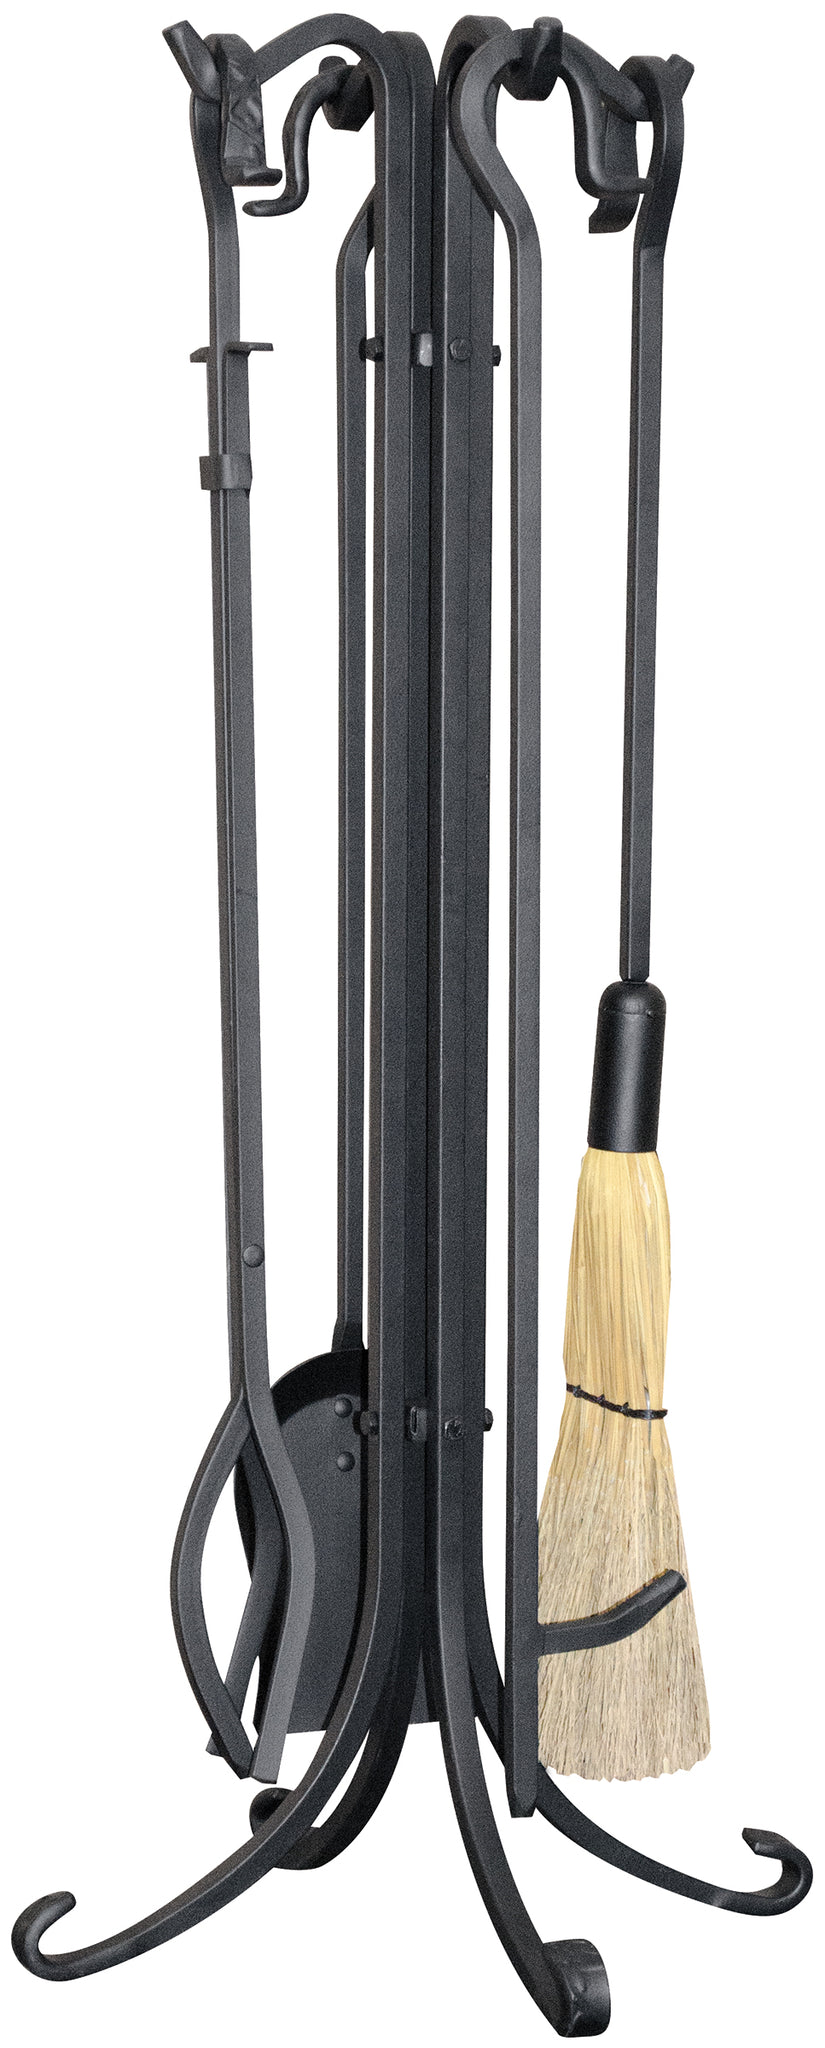 5 PIECE BLACK HEAVY WEIGHT FIRESET WITH CROOK HANDLES F-1021 - PATIO AND FIREPLACE CONCEPTS